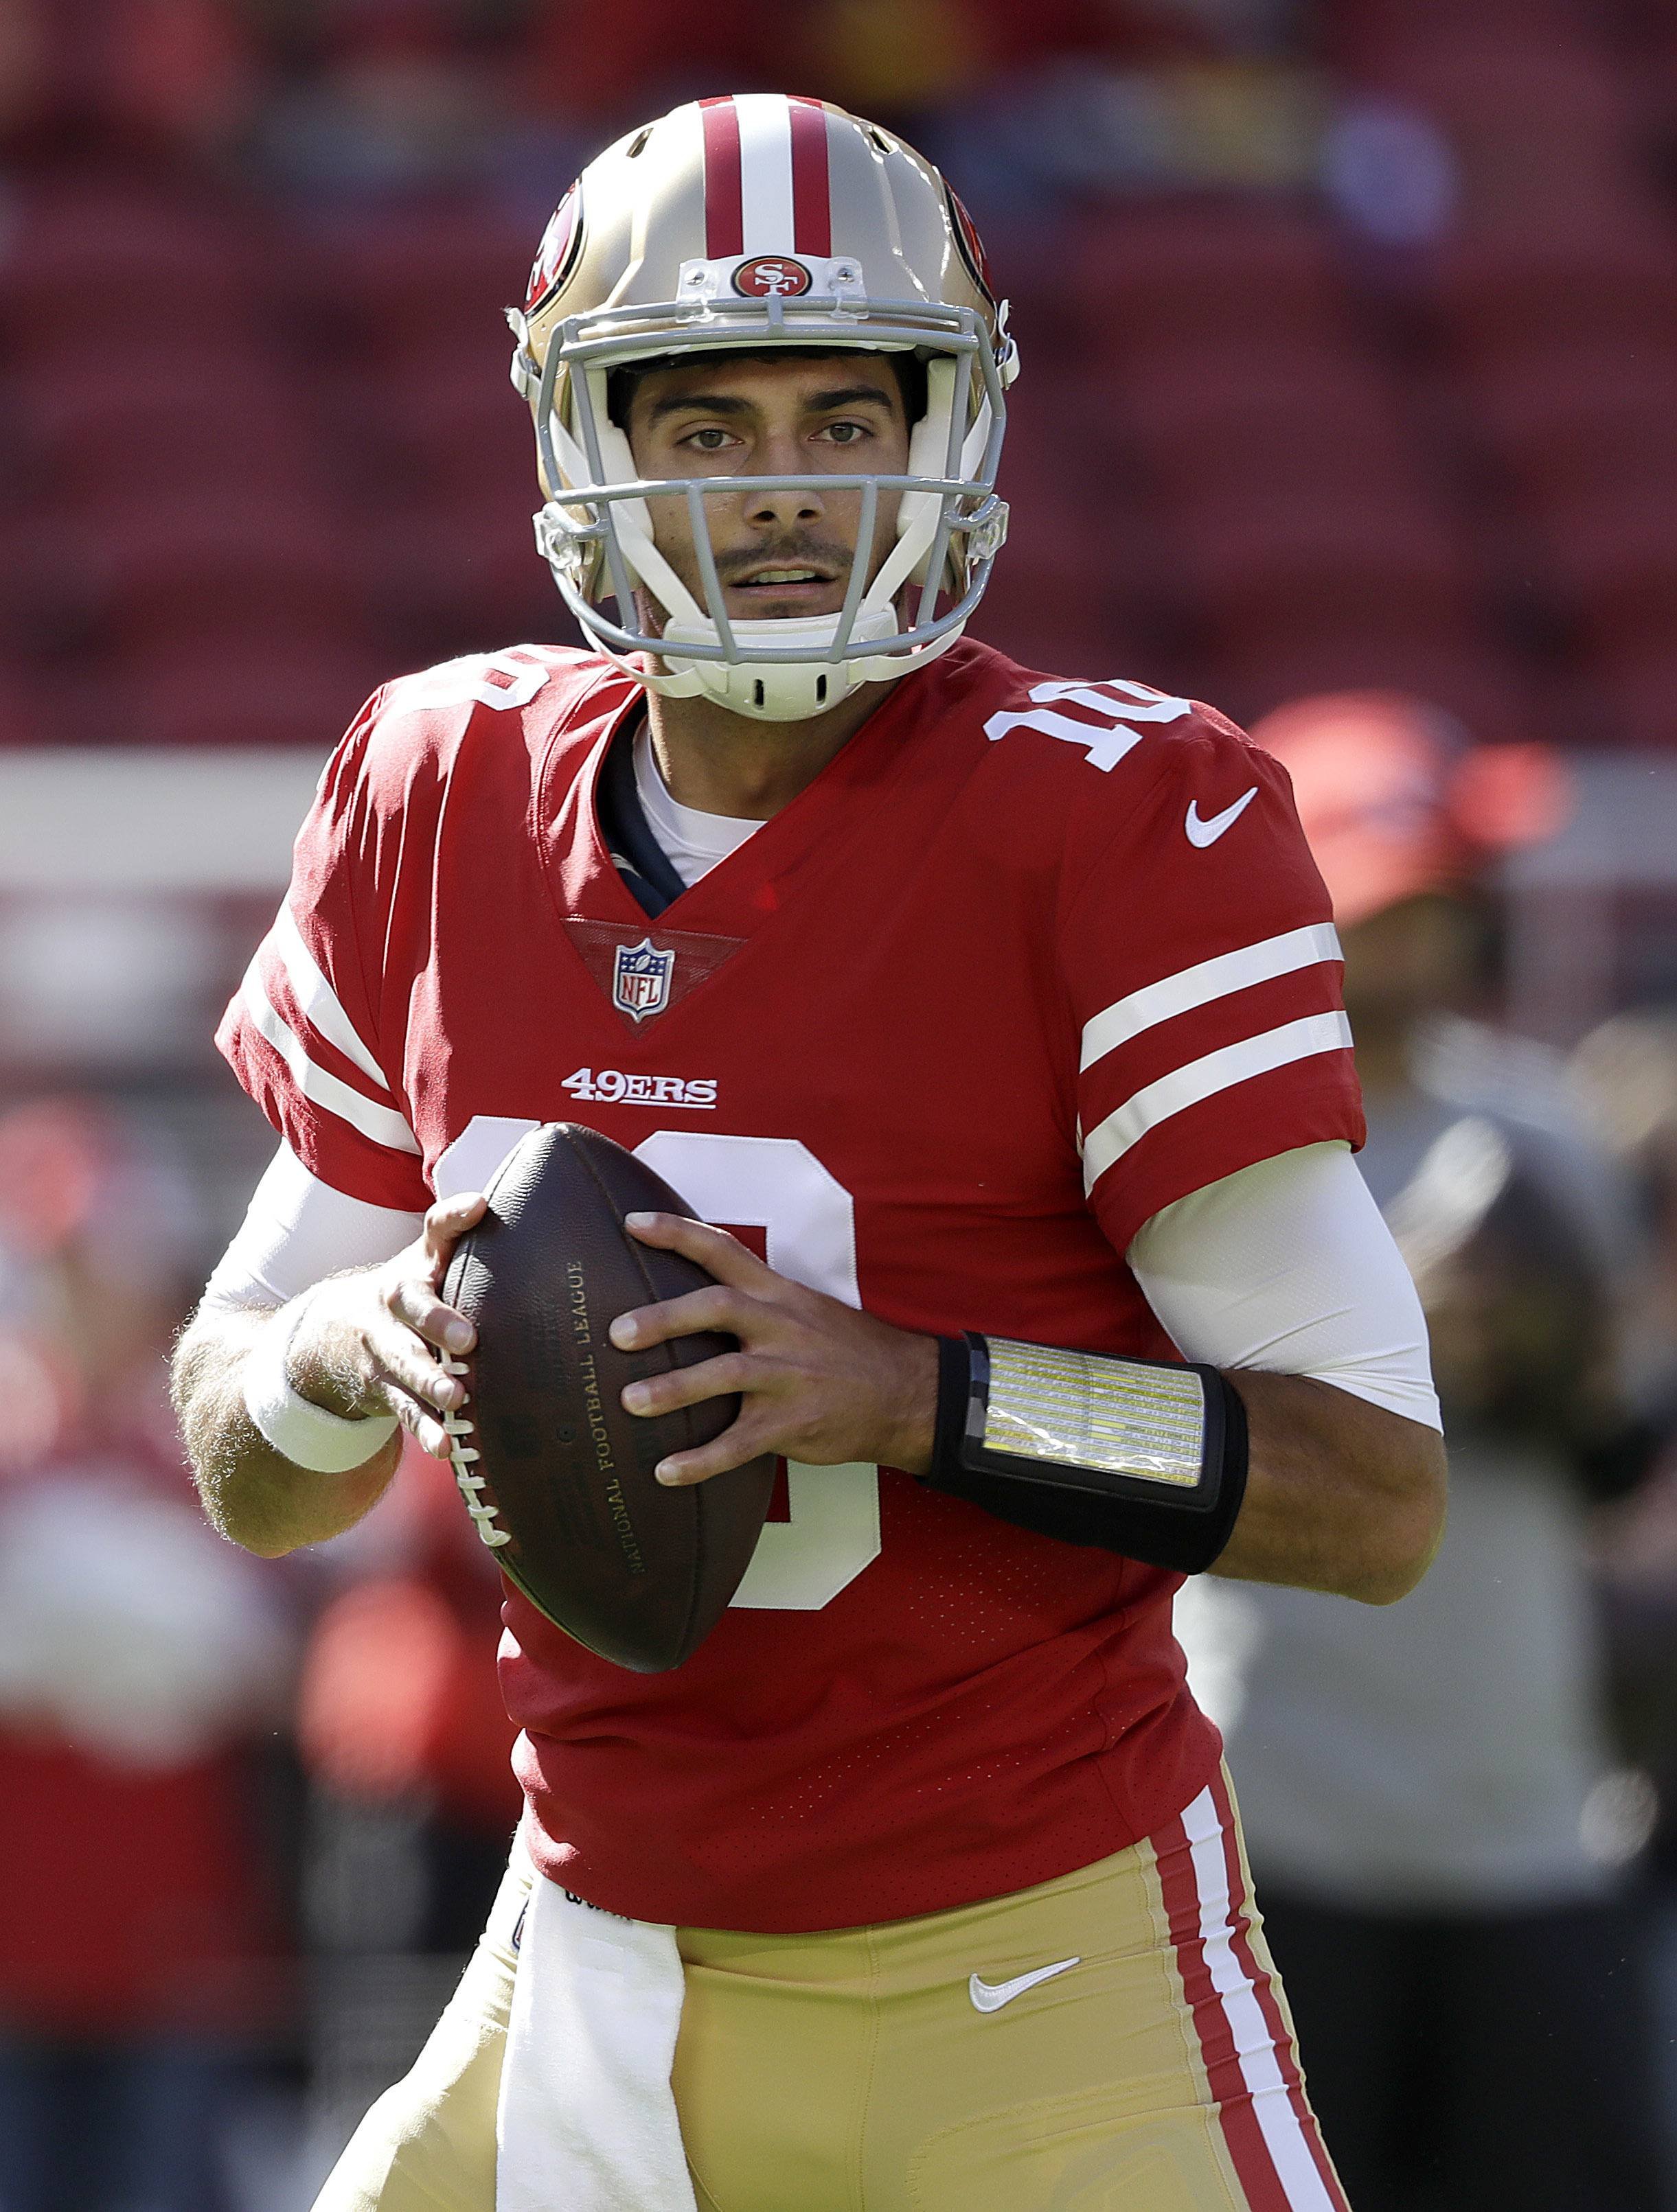 Garoppolo coming home to face Chicago Bears